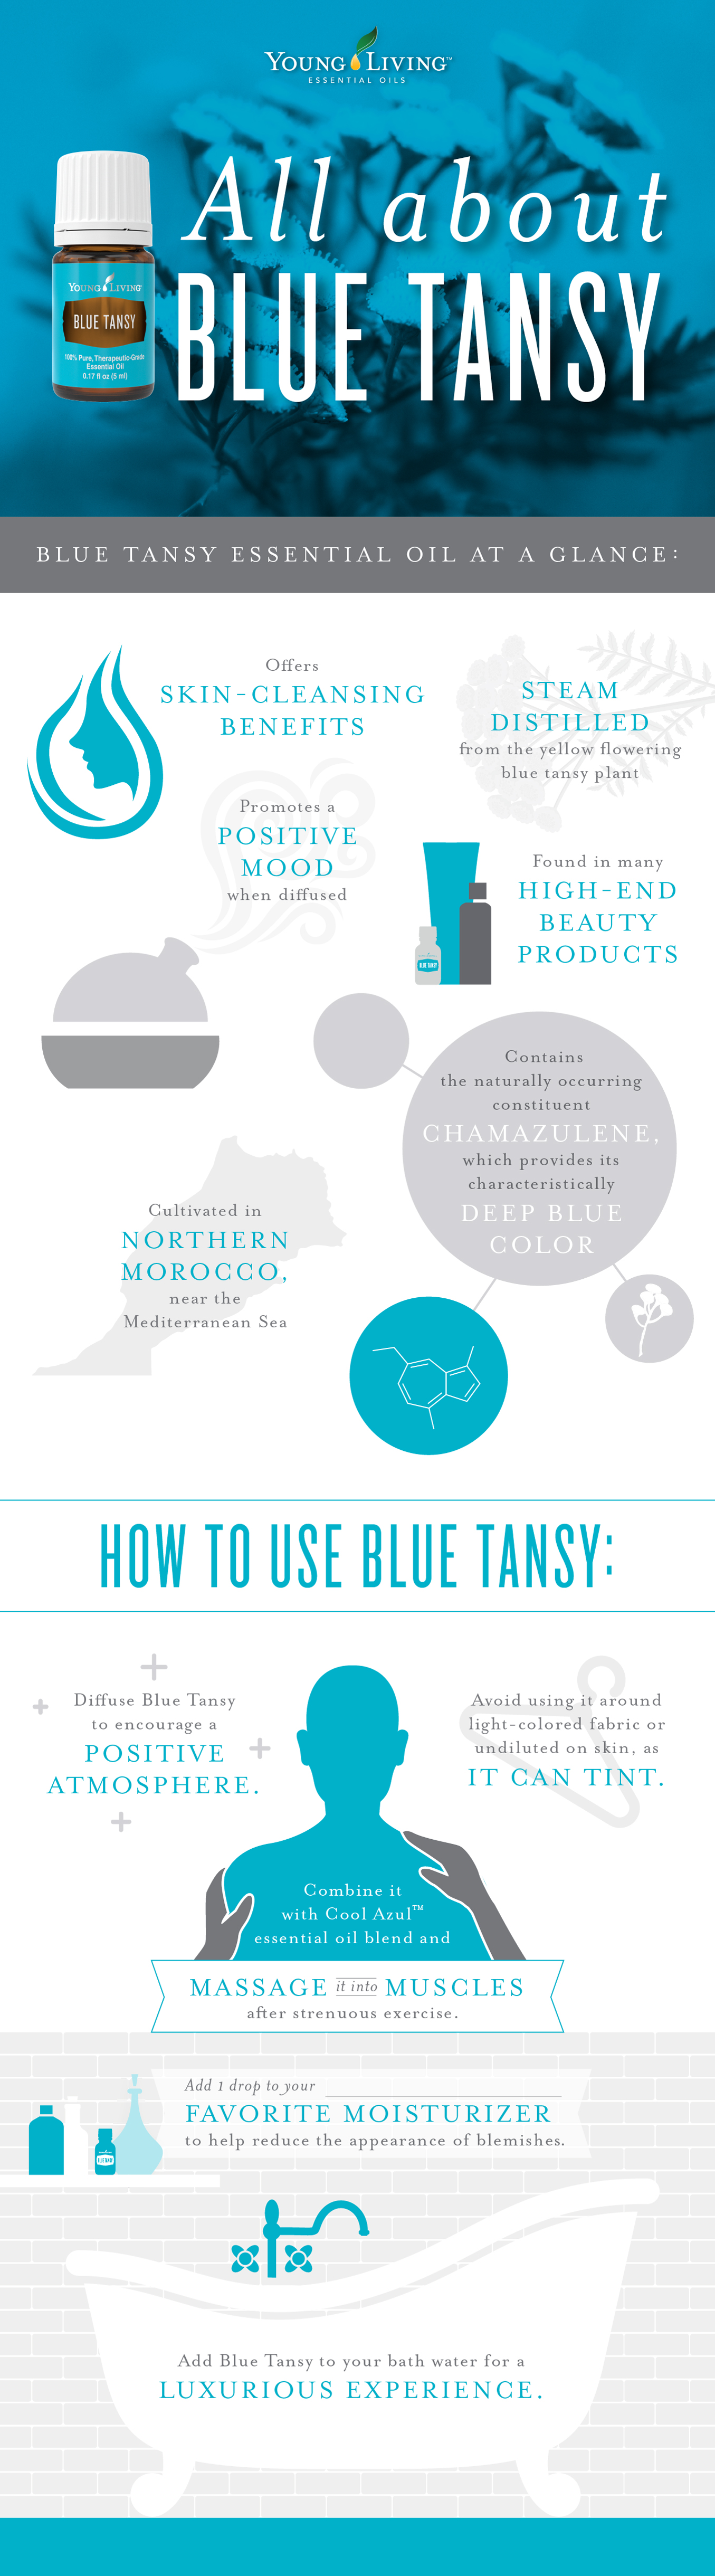 Blue Tansy essential oil benefits and uses